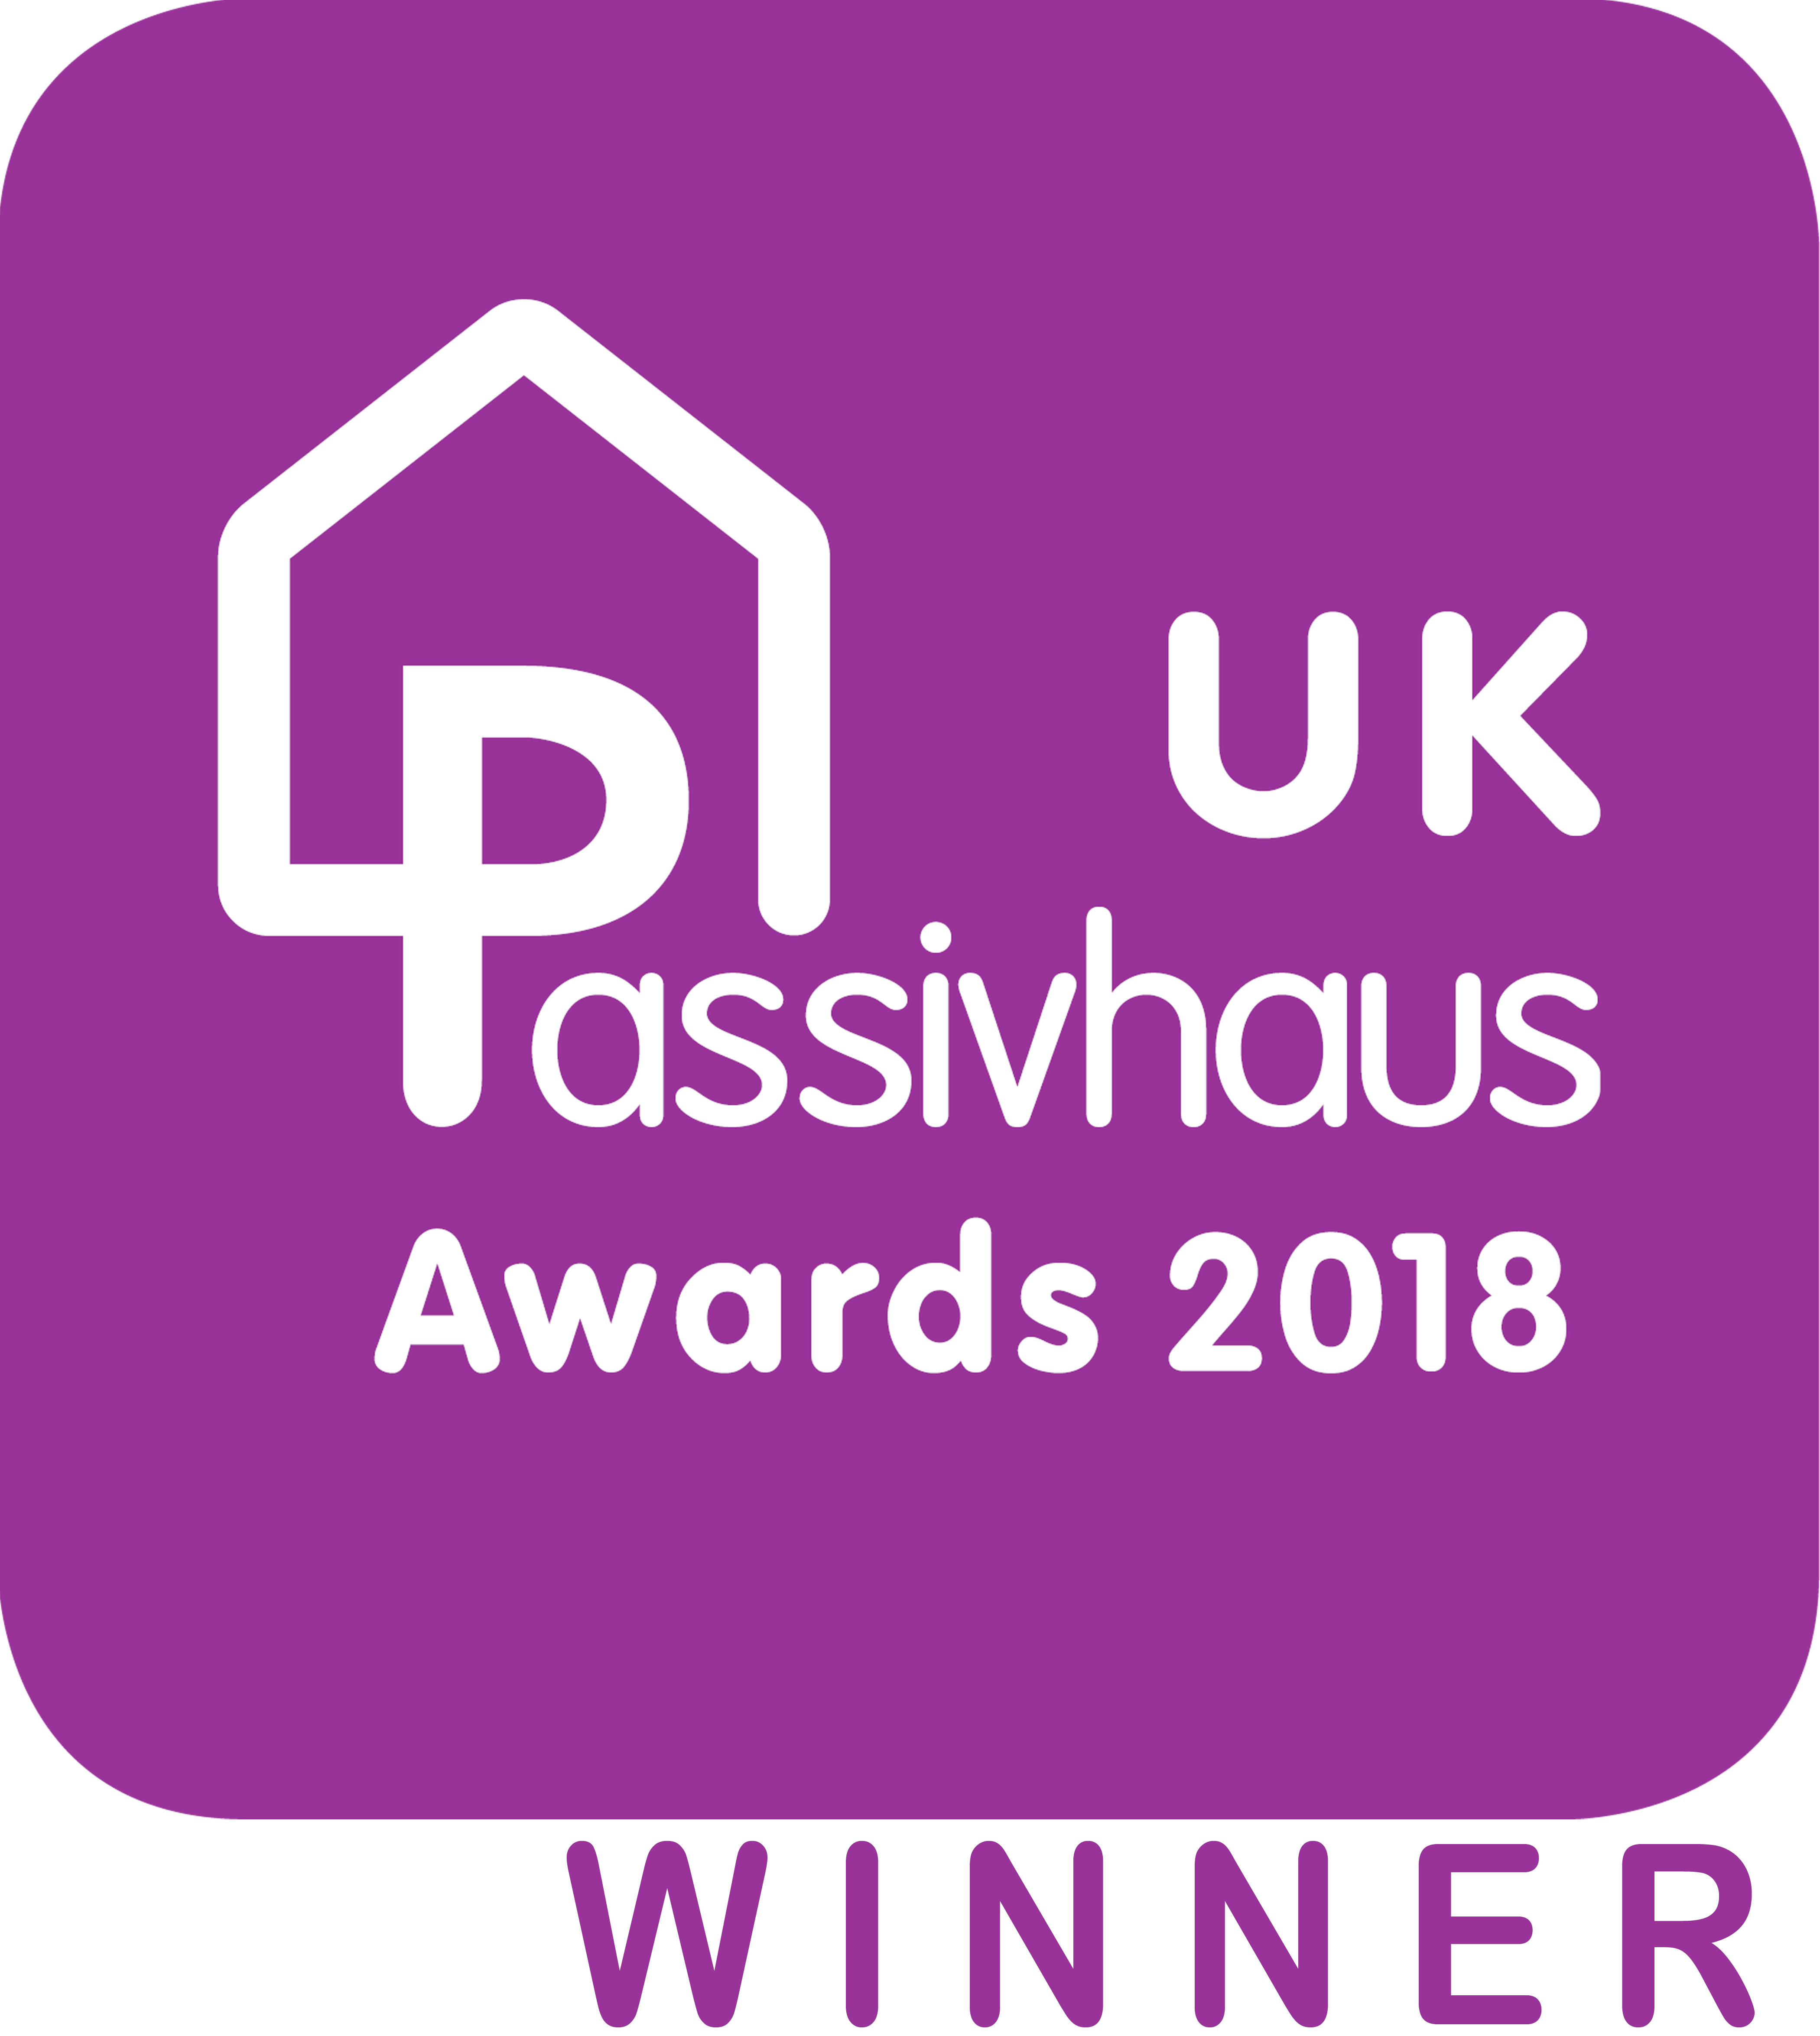 2018 UK Passivhaus Awards people's choice WINNER